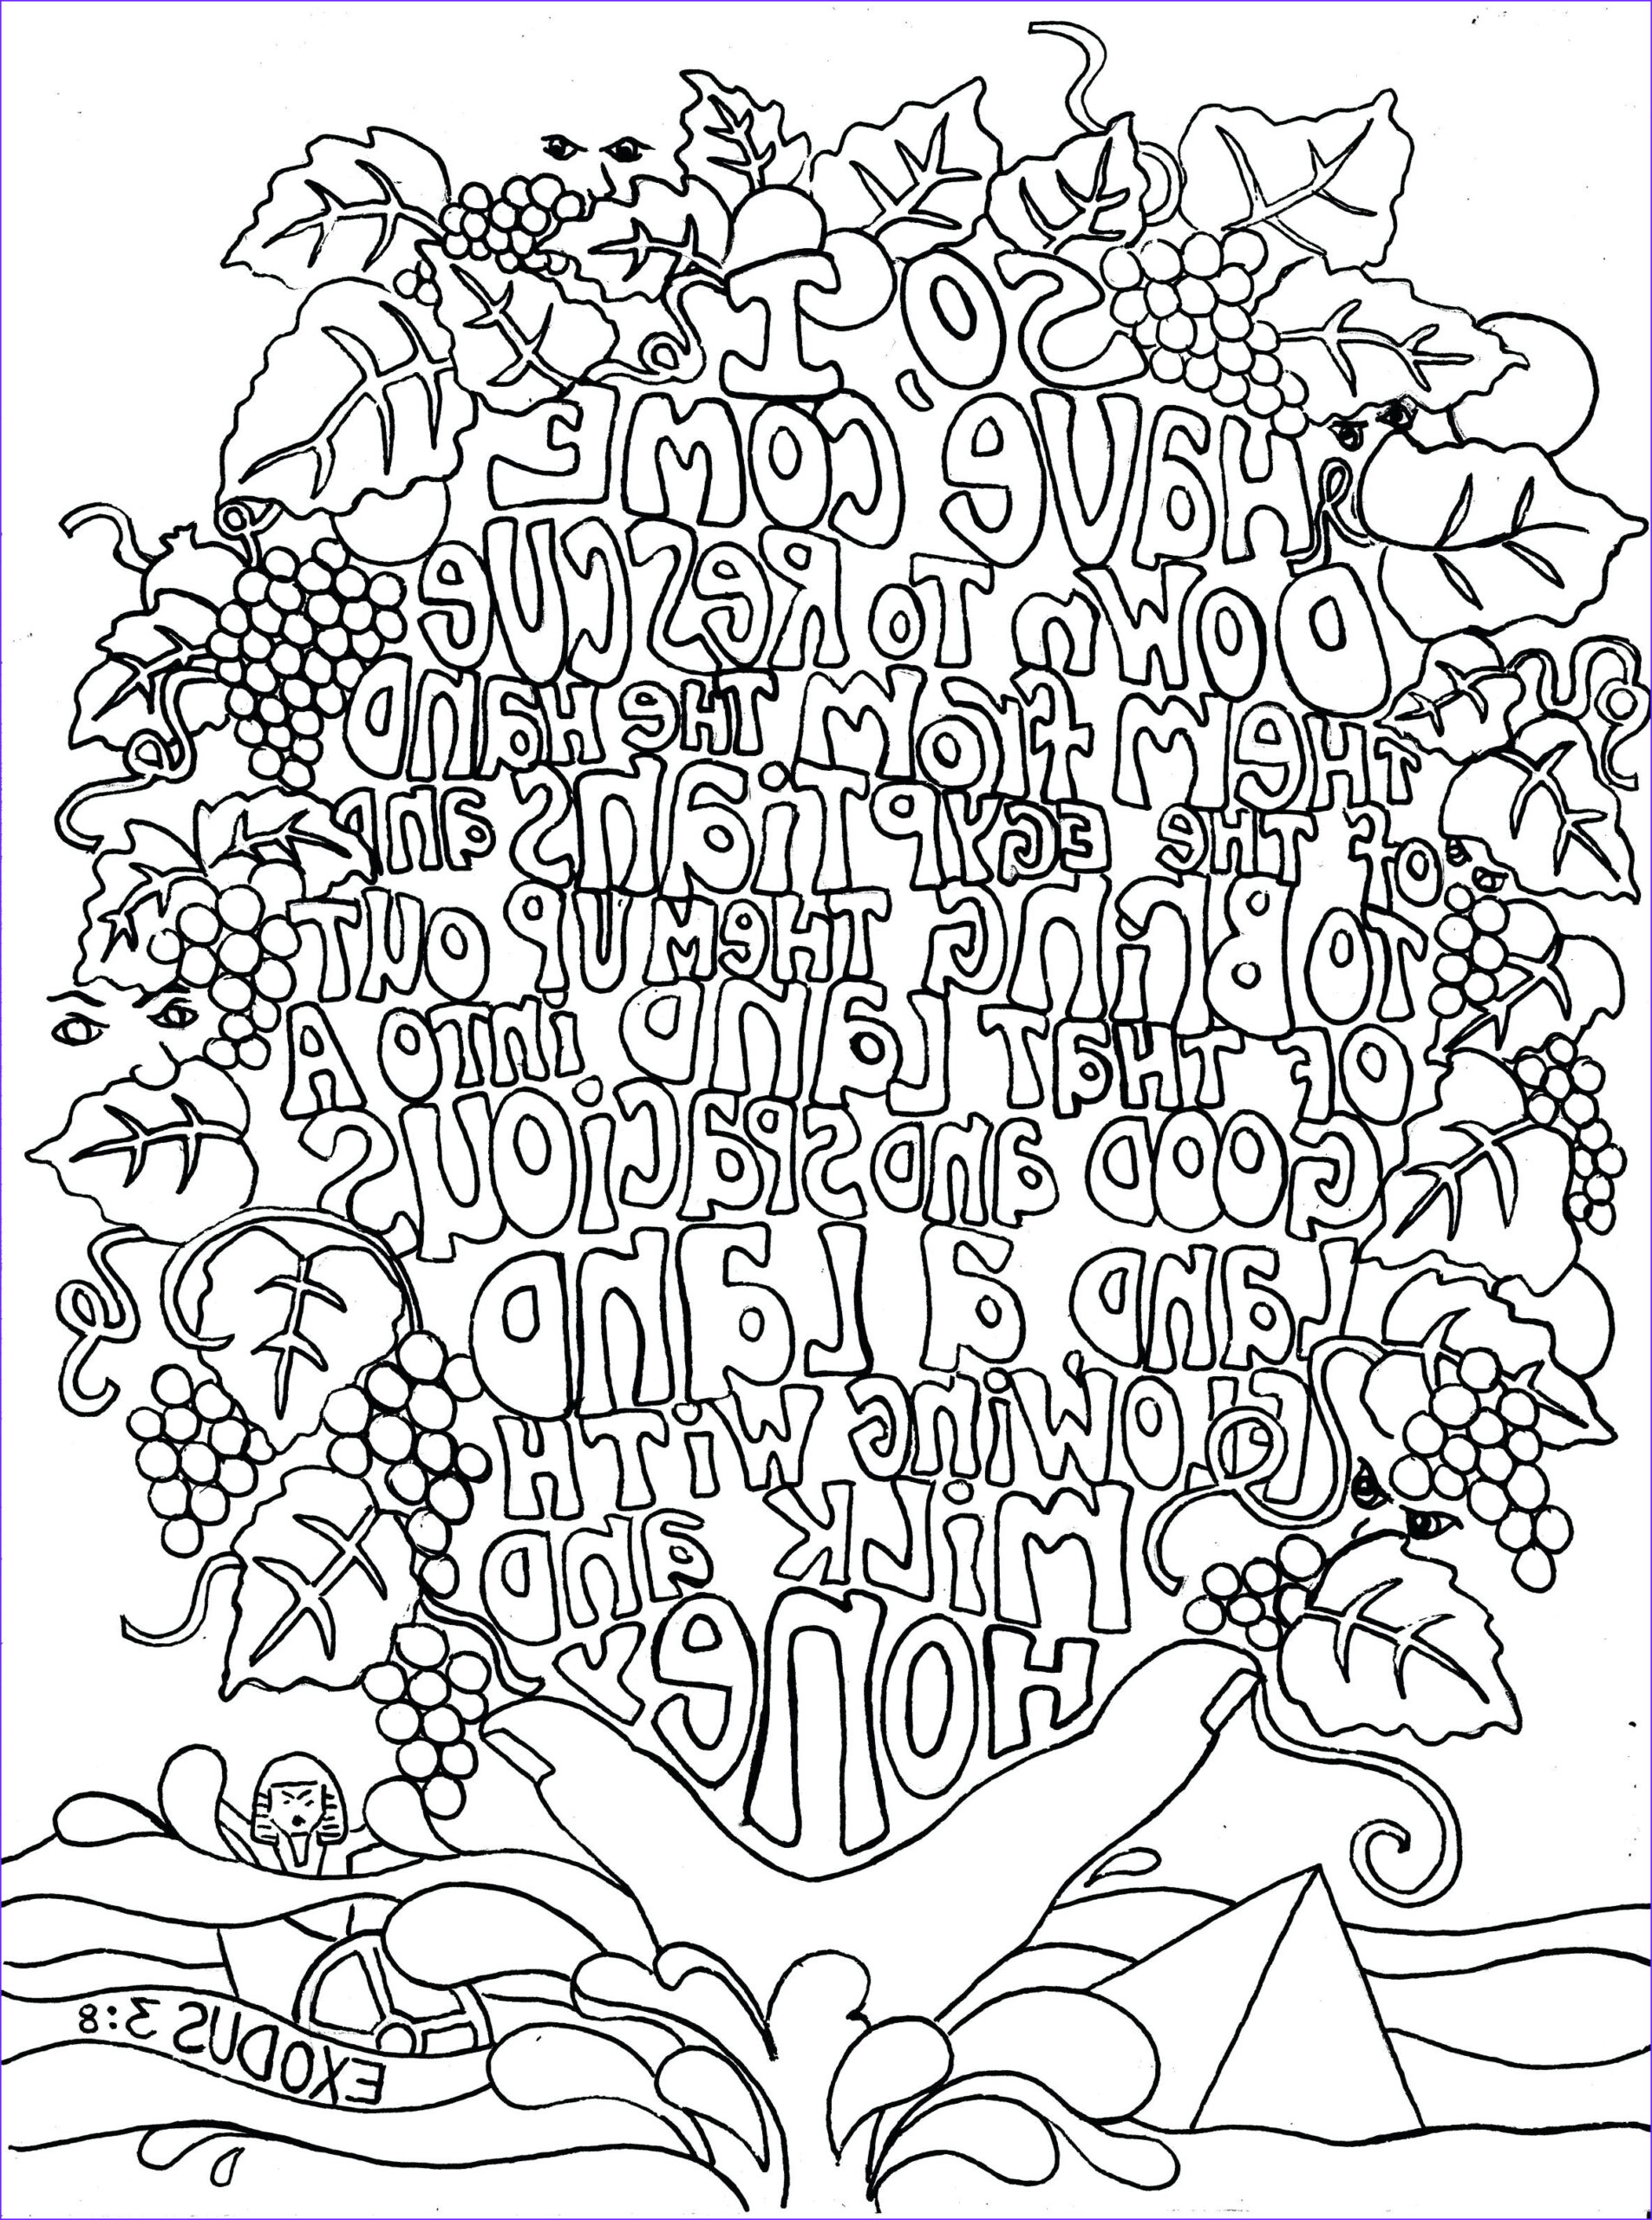 Free Printable Scripture Coloring Pages for Adults Elegant Images Bible Verses Coloring Pages for Adults Free